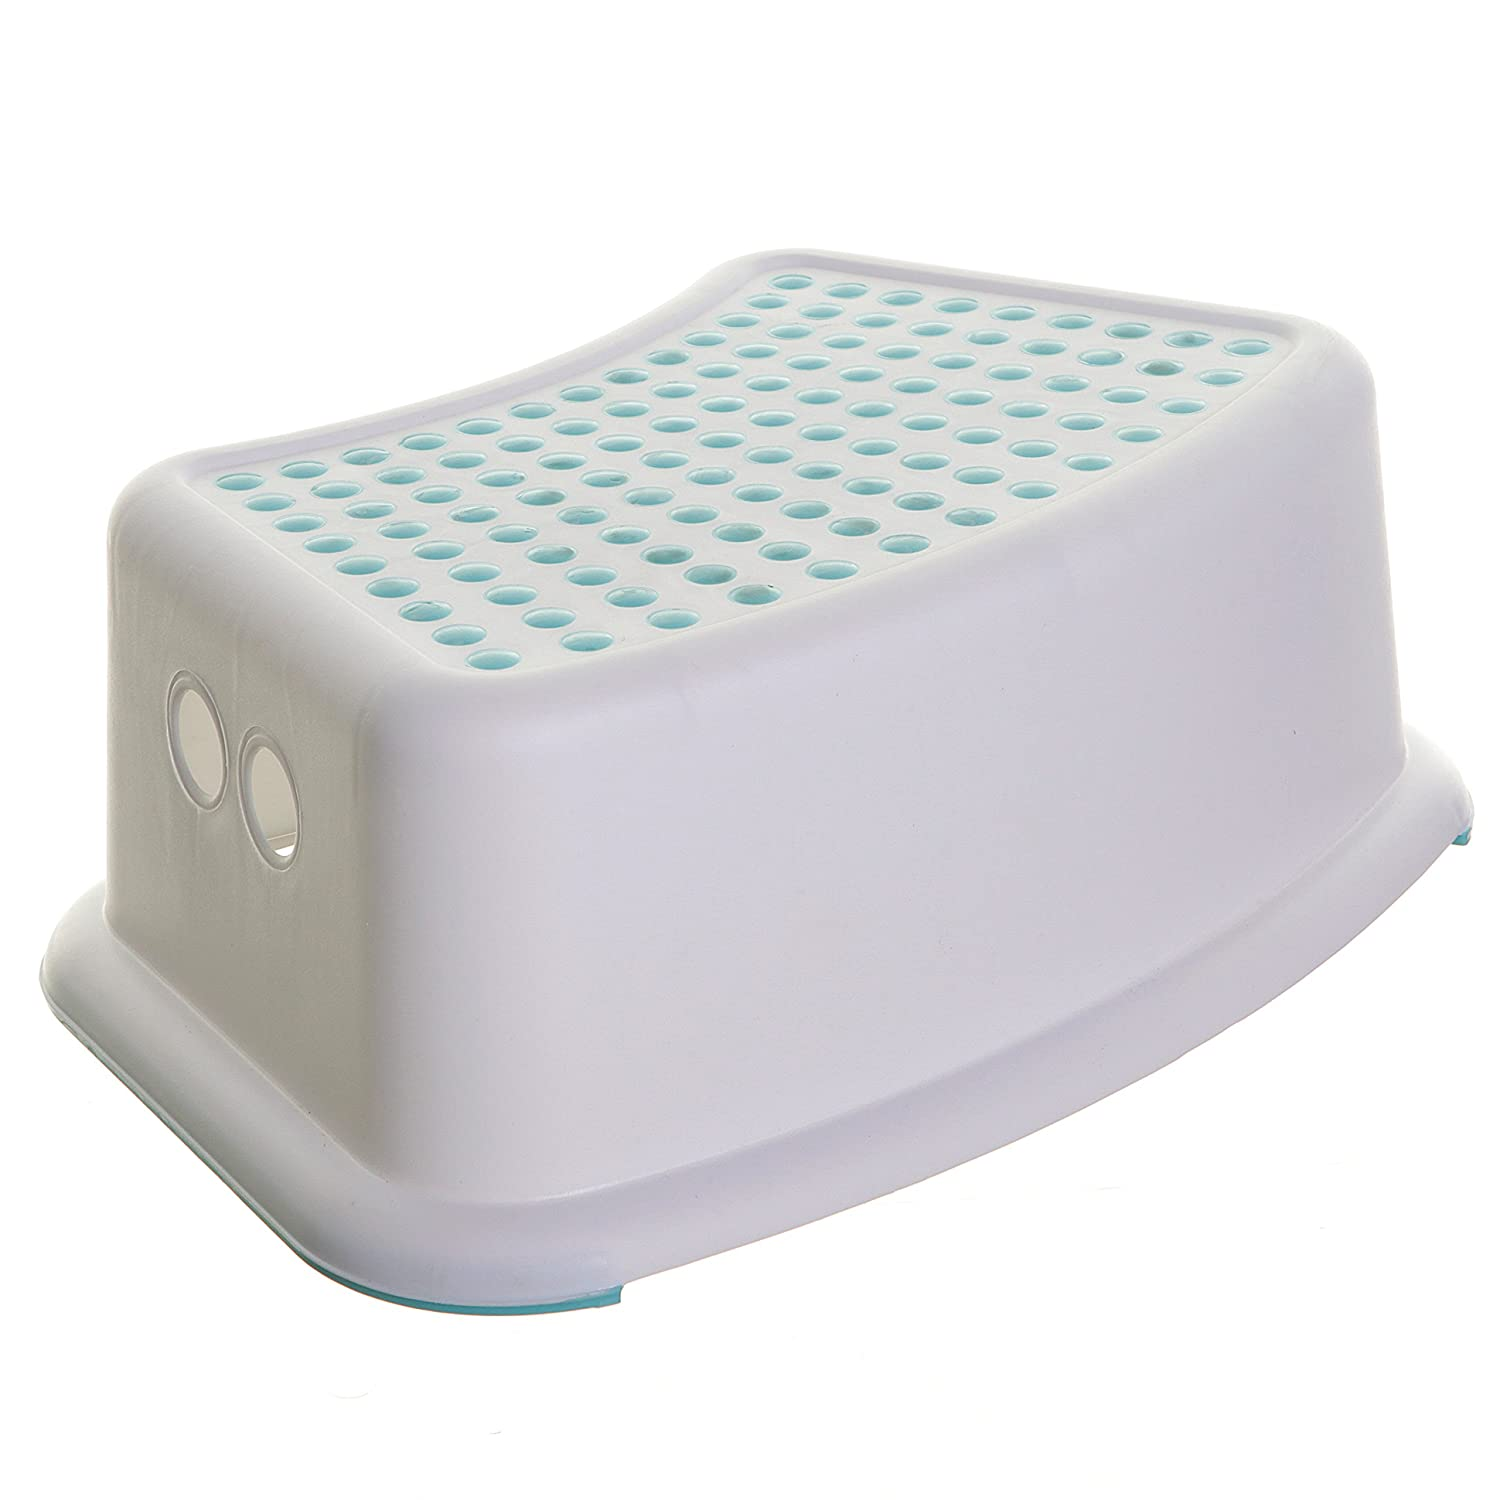 Dreambaby Step Stool , White/Aqua Dreambaby® F672